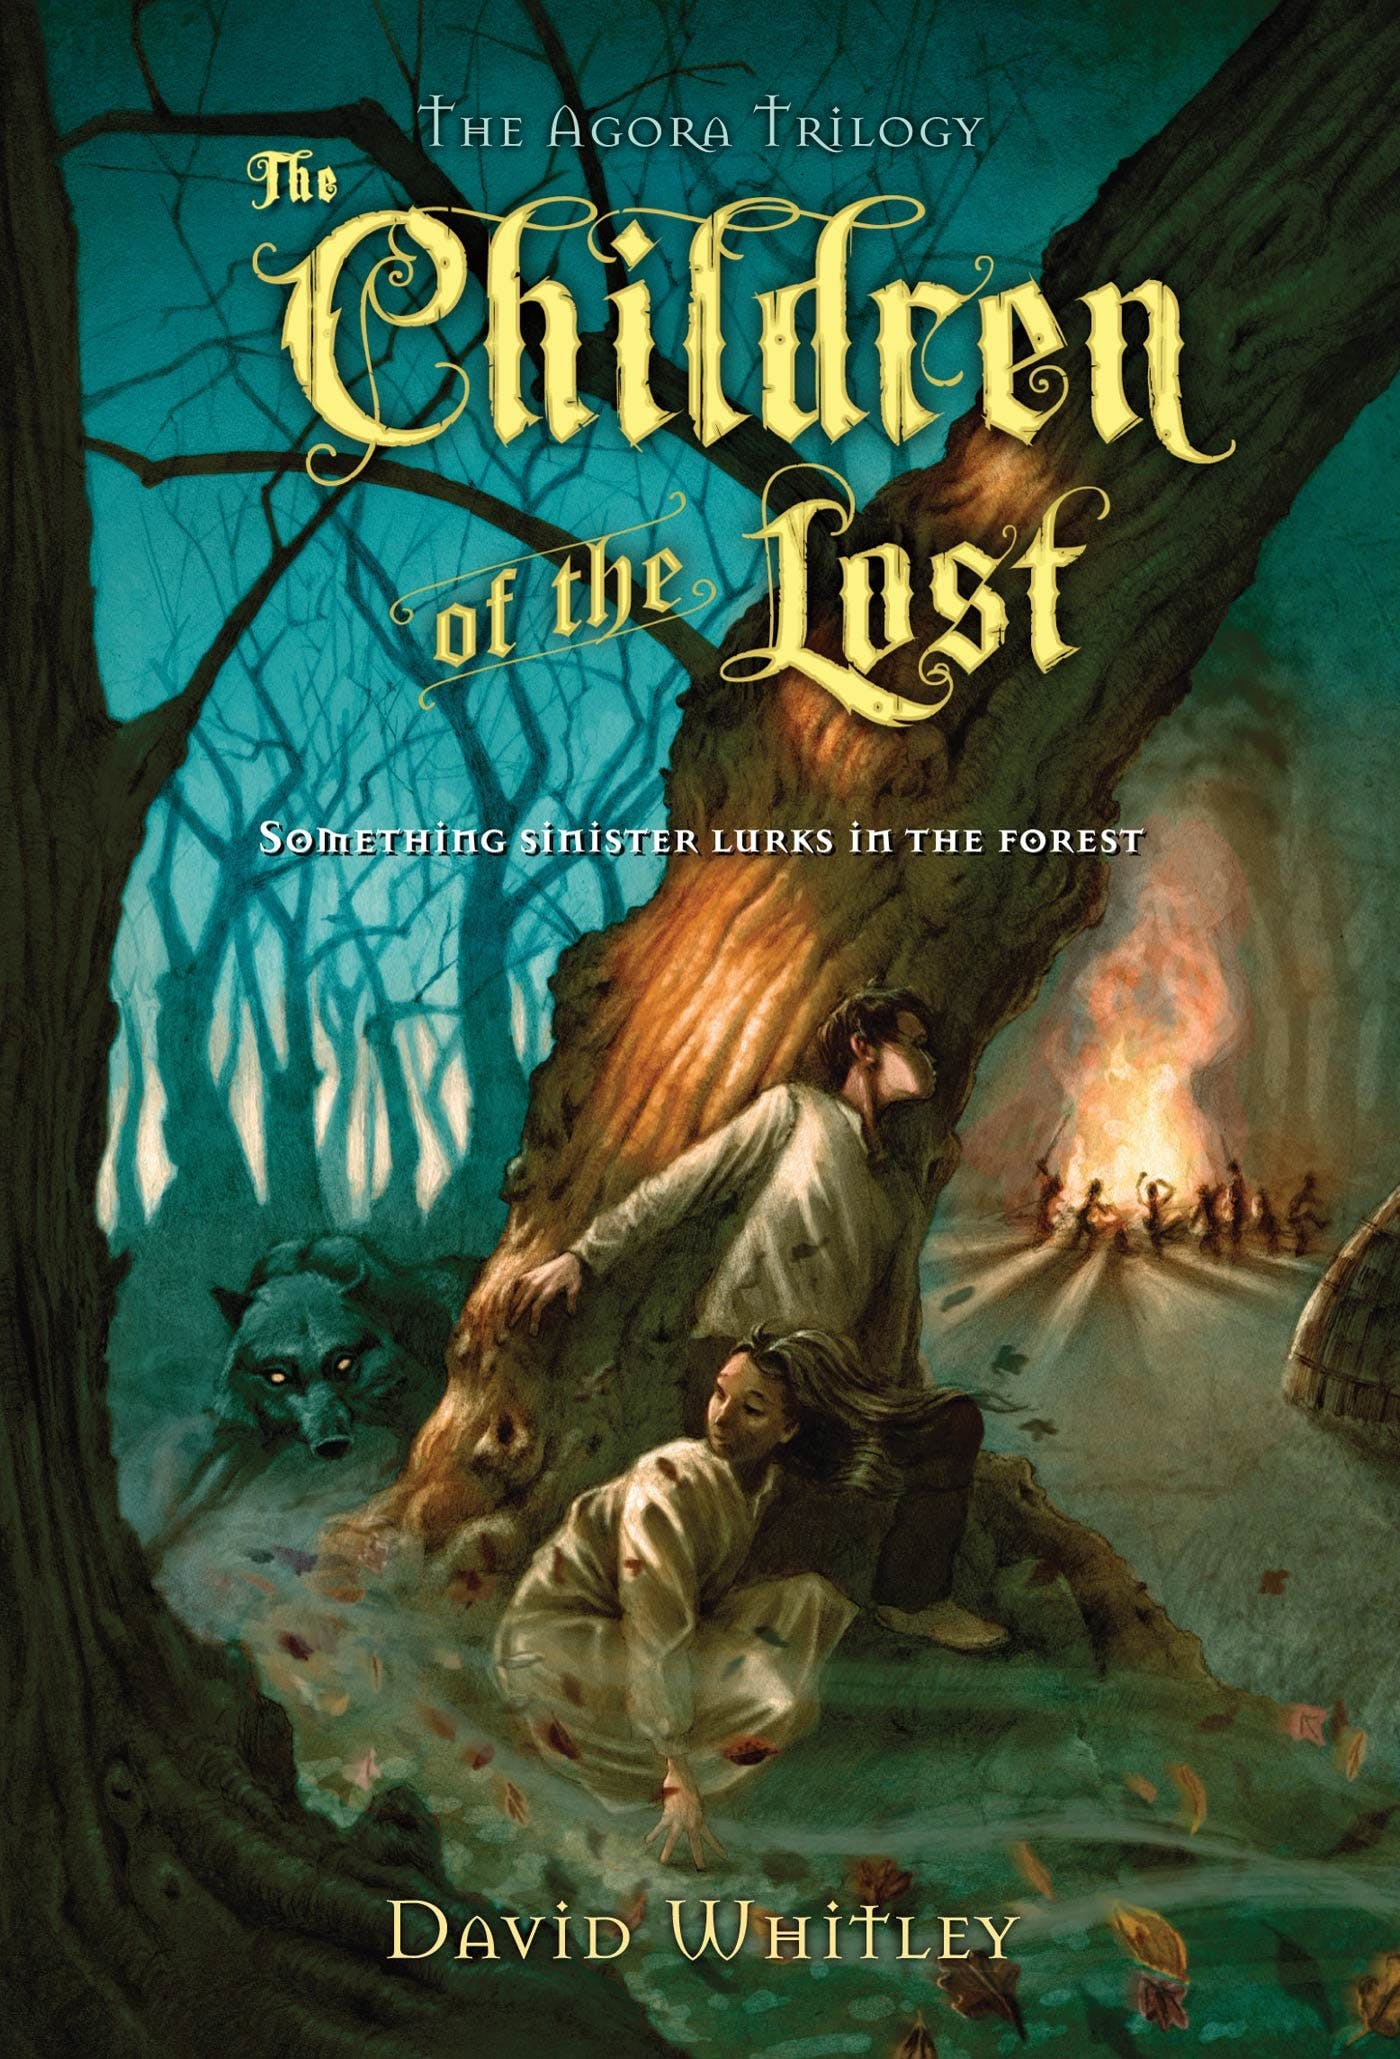 Image of The Children of the Lost